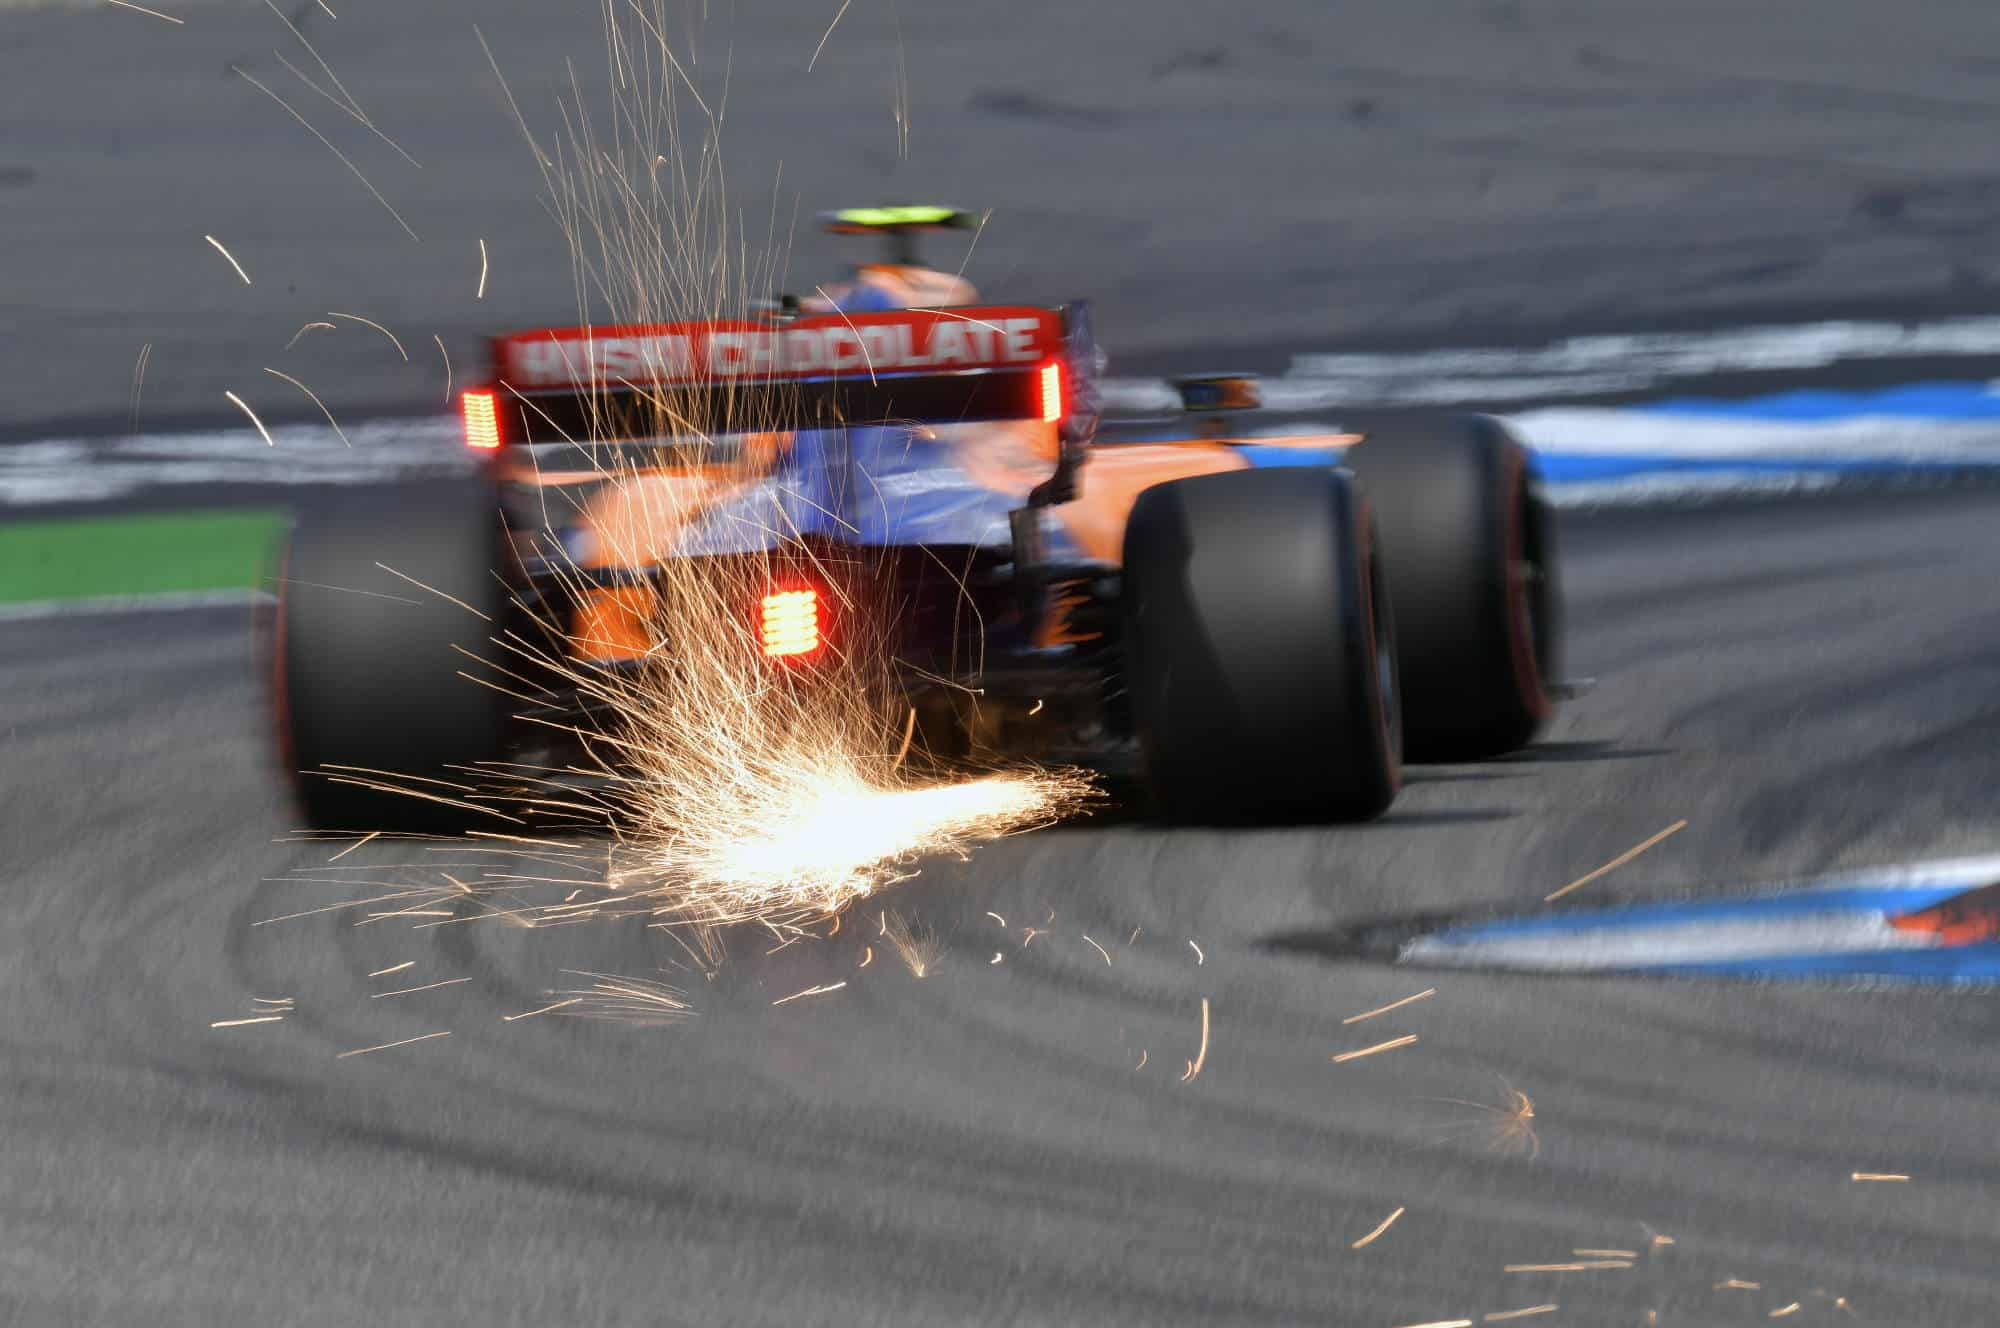 Lando Norris McLaren MCL34 German GP F1 2019 rear end sparks Photo McLaren